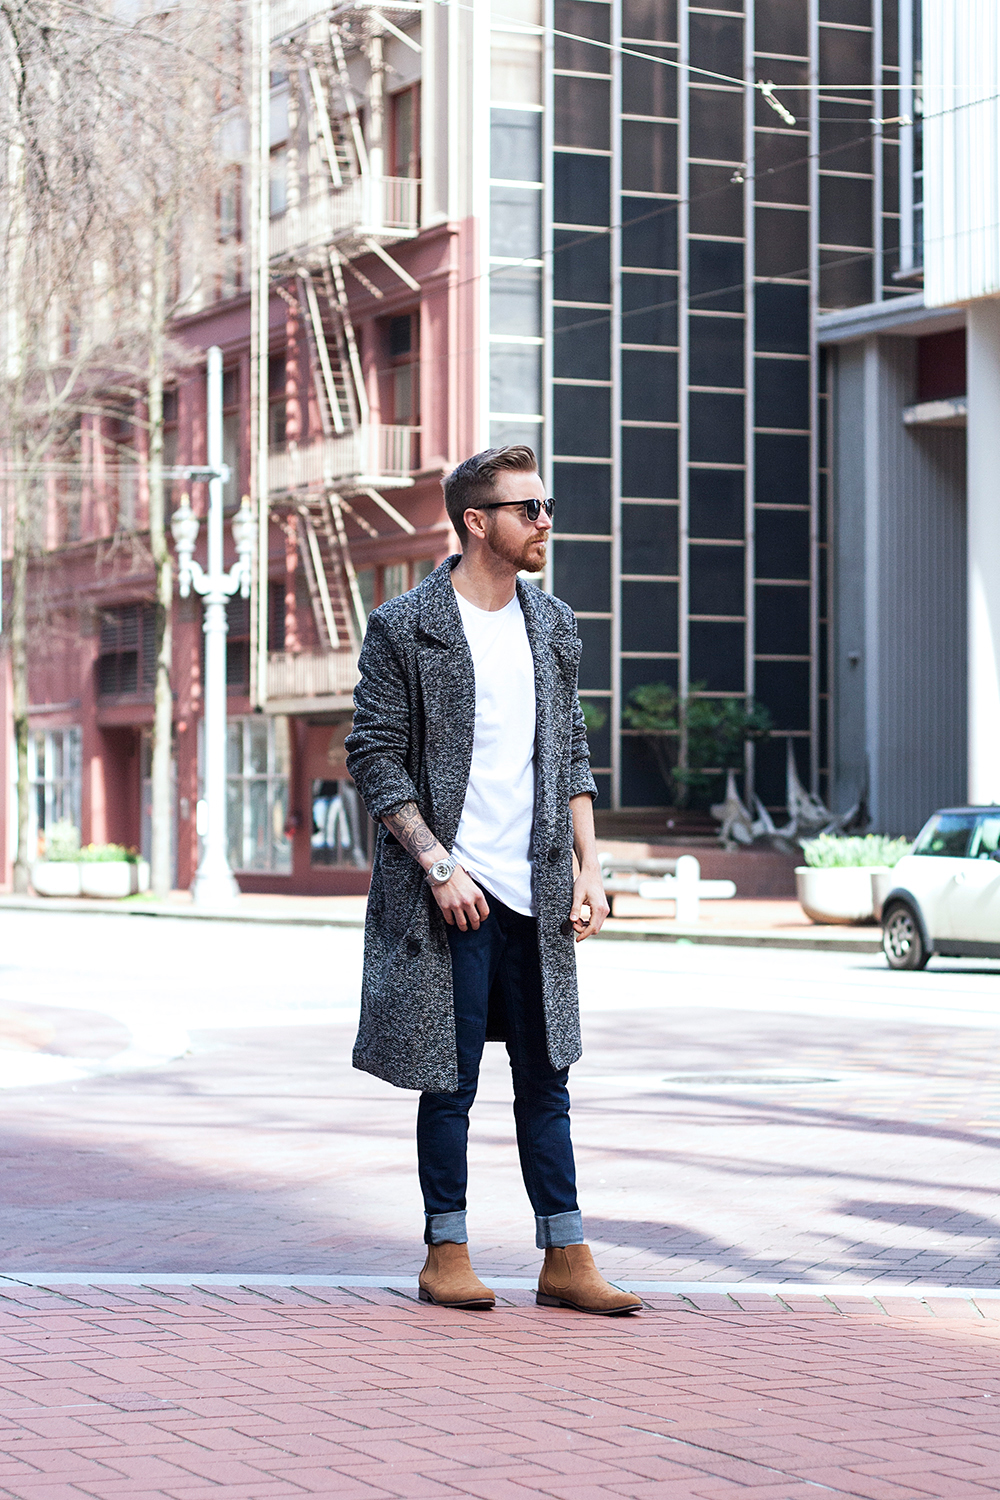 12portland-downtown-travel-style-fashion-men